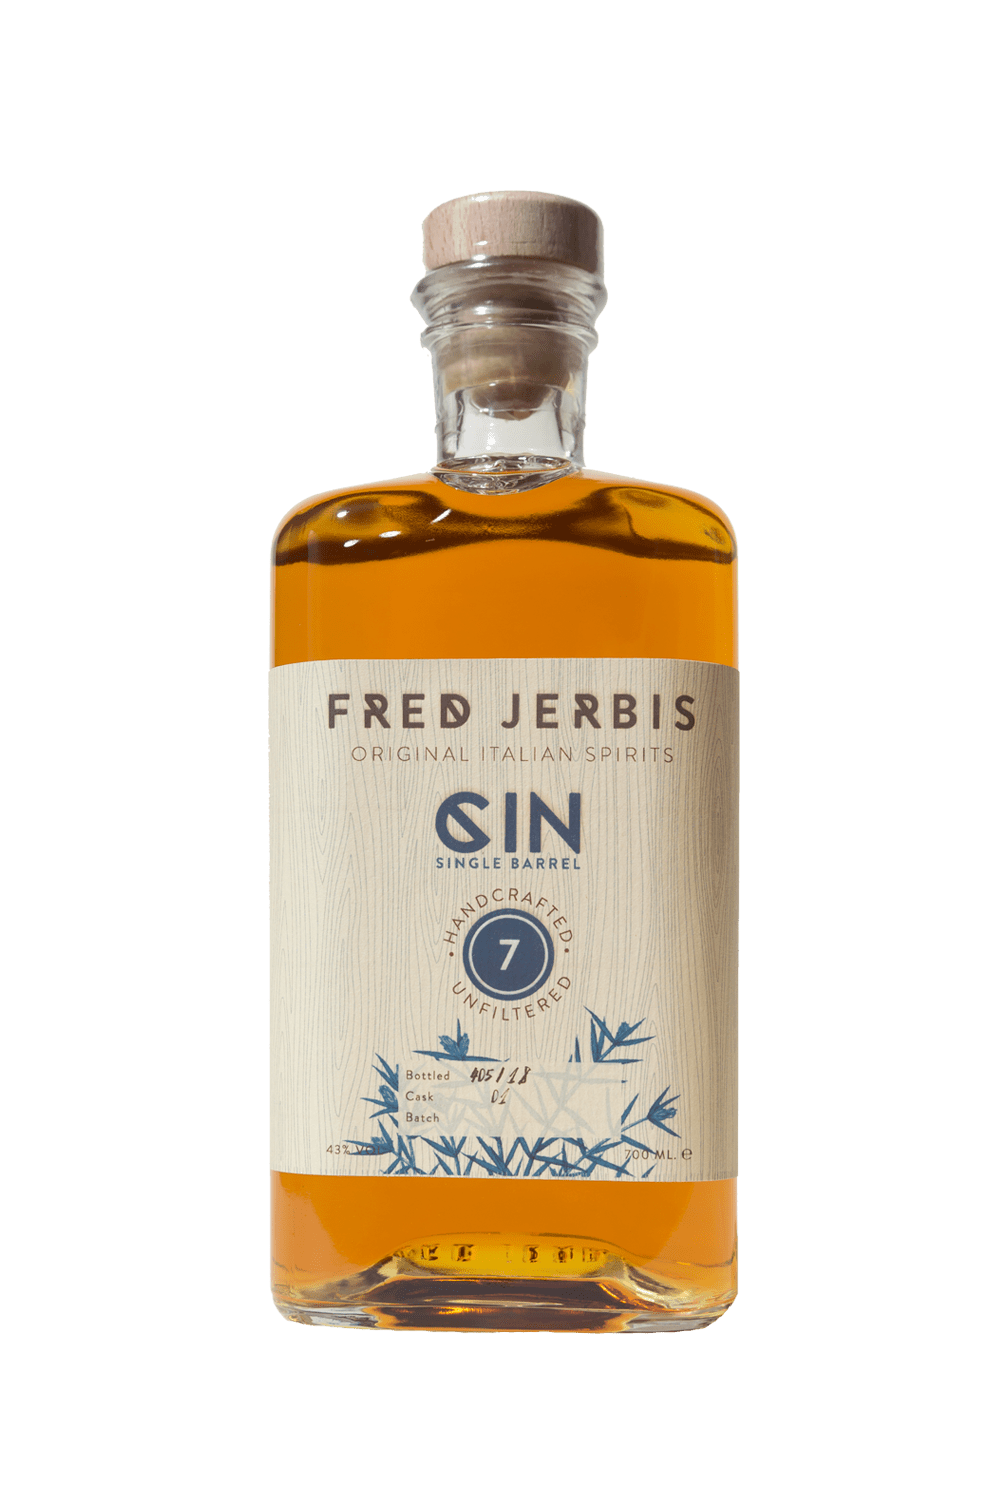 Fred Jerbis Gin 7 – Single Barrel